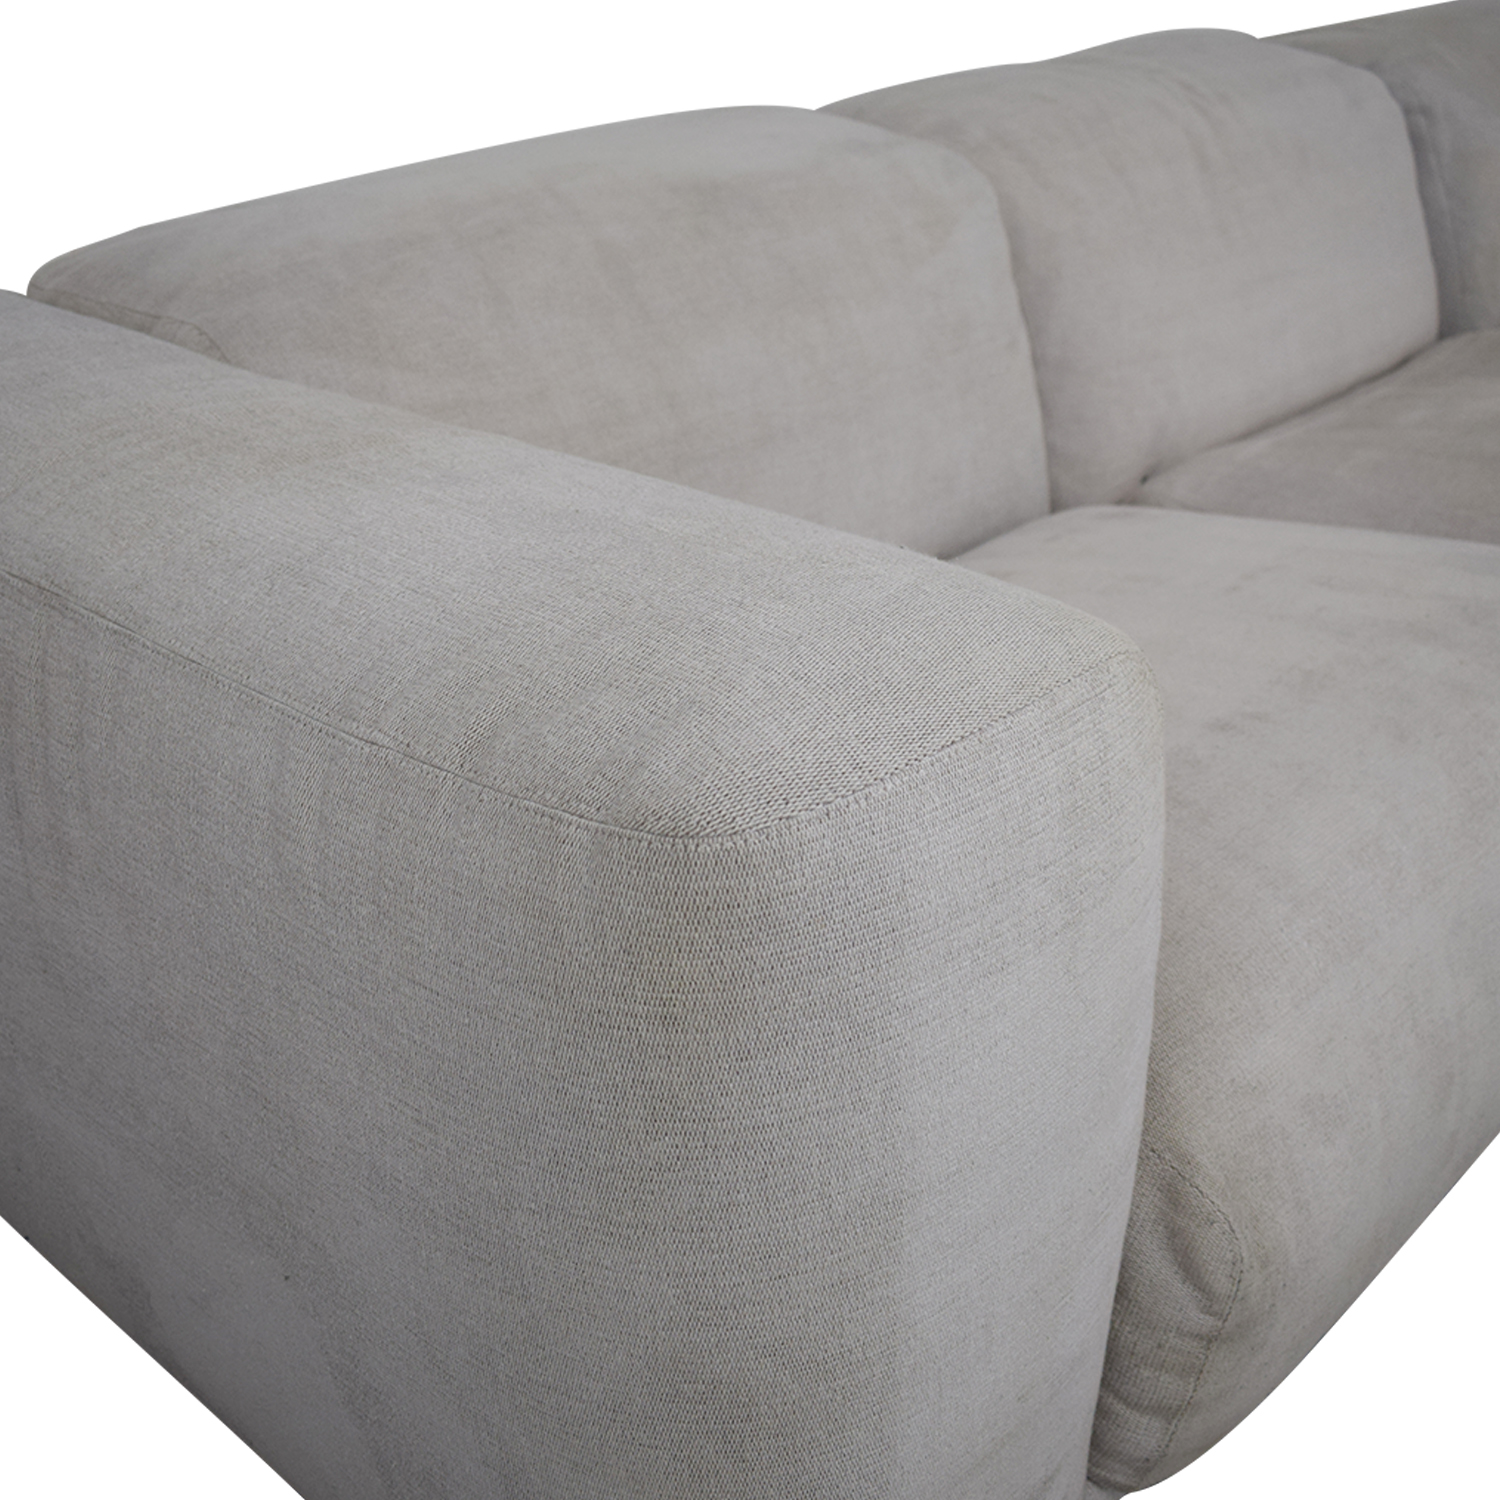 Design Within Reach Design Within Reach Kelston Sectional with Chaise dimensions